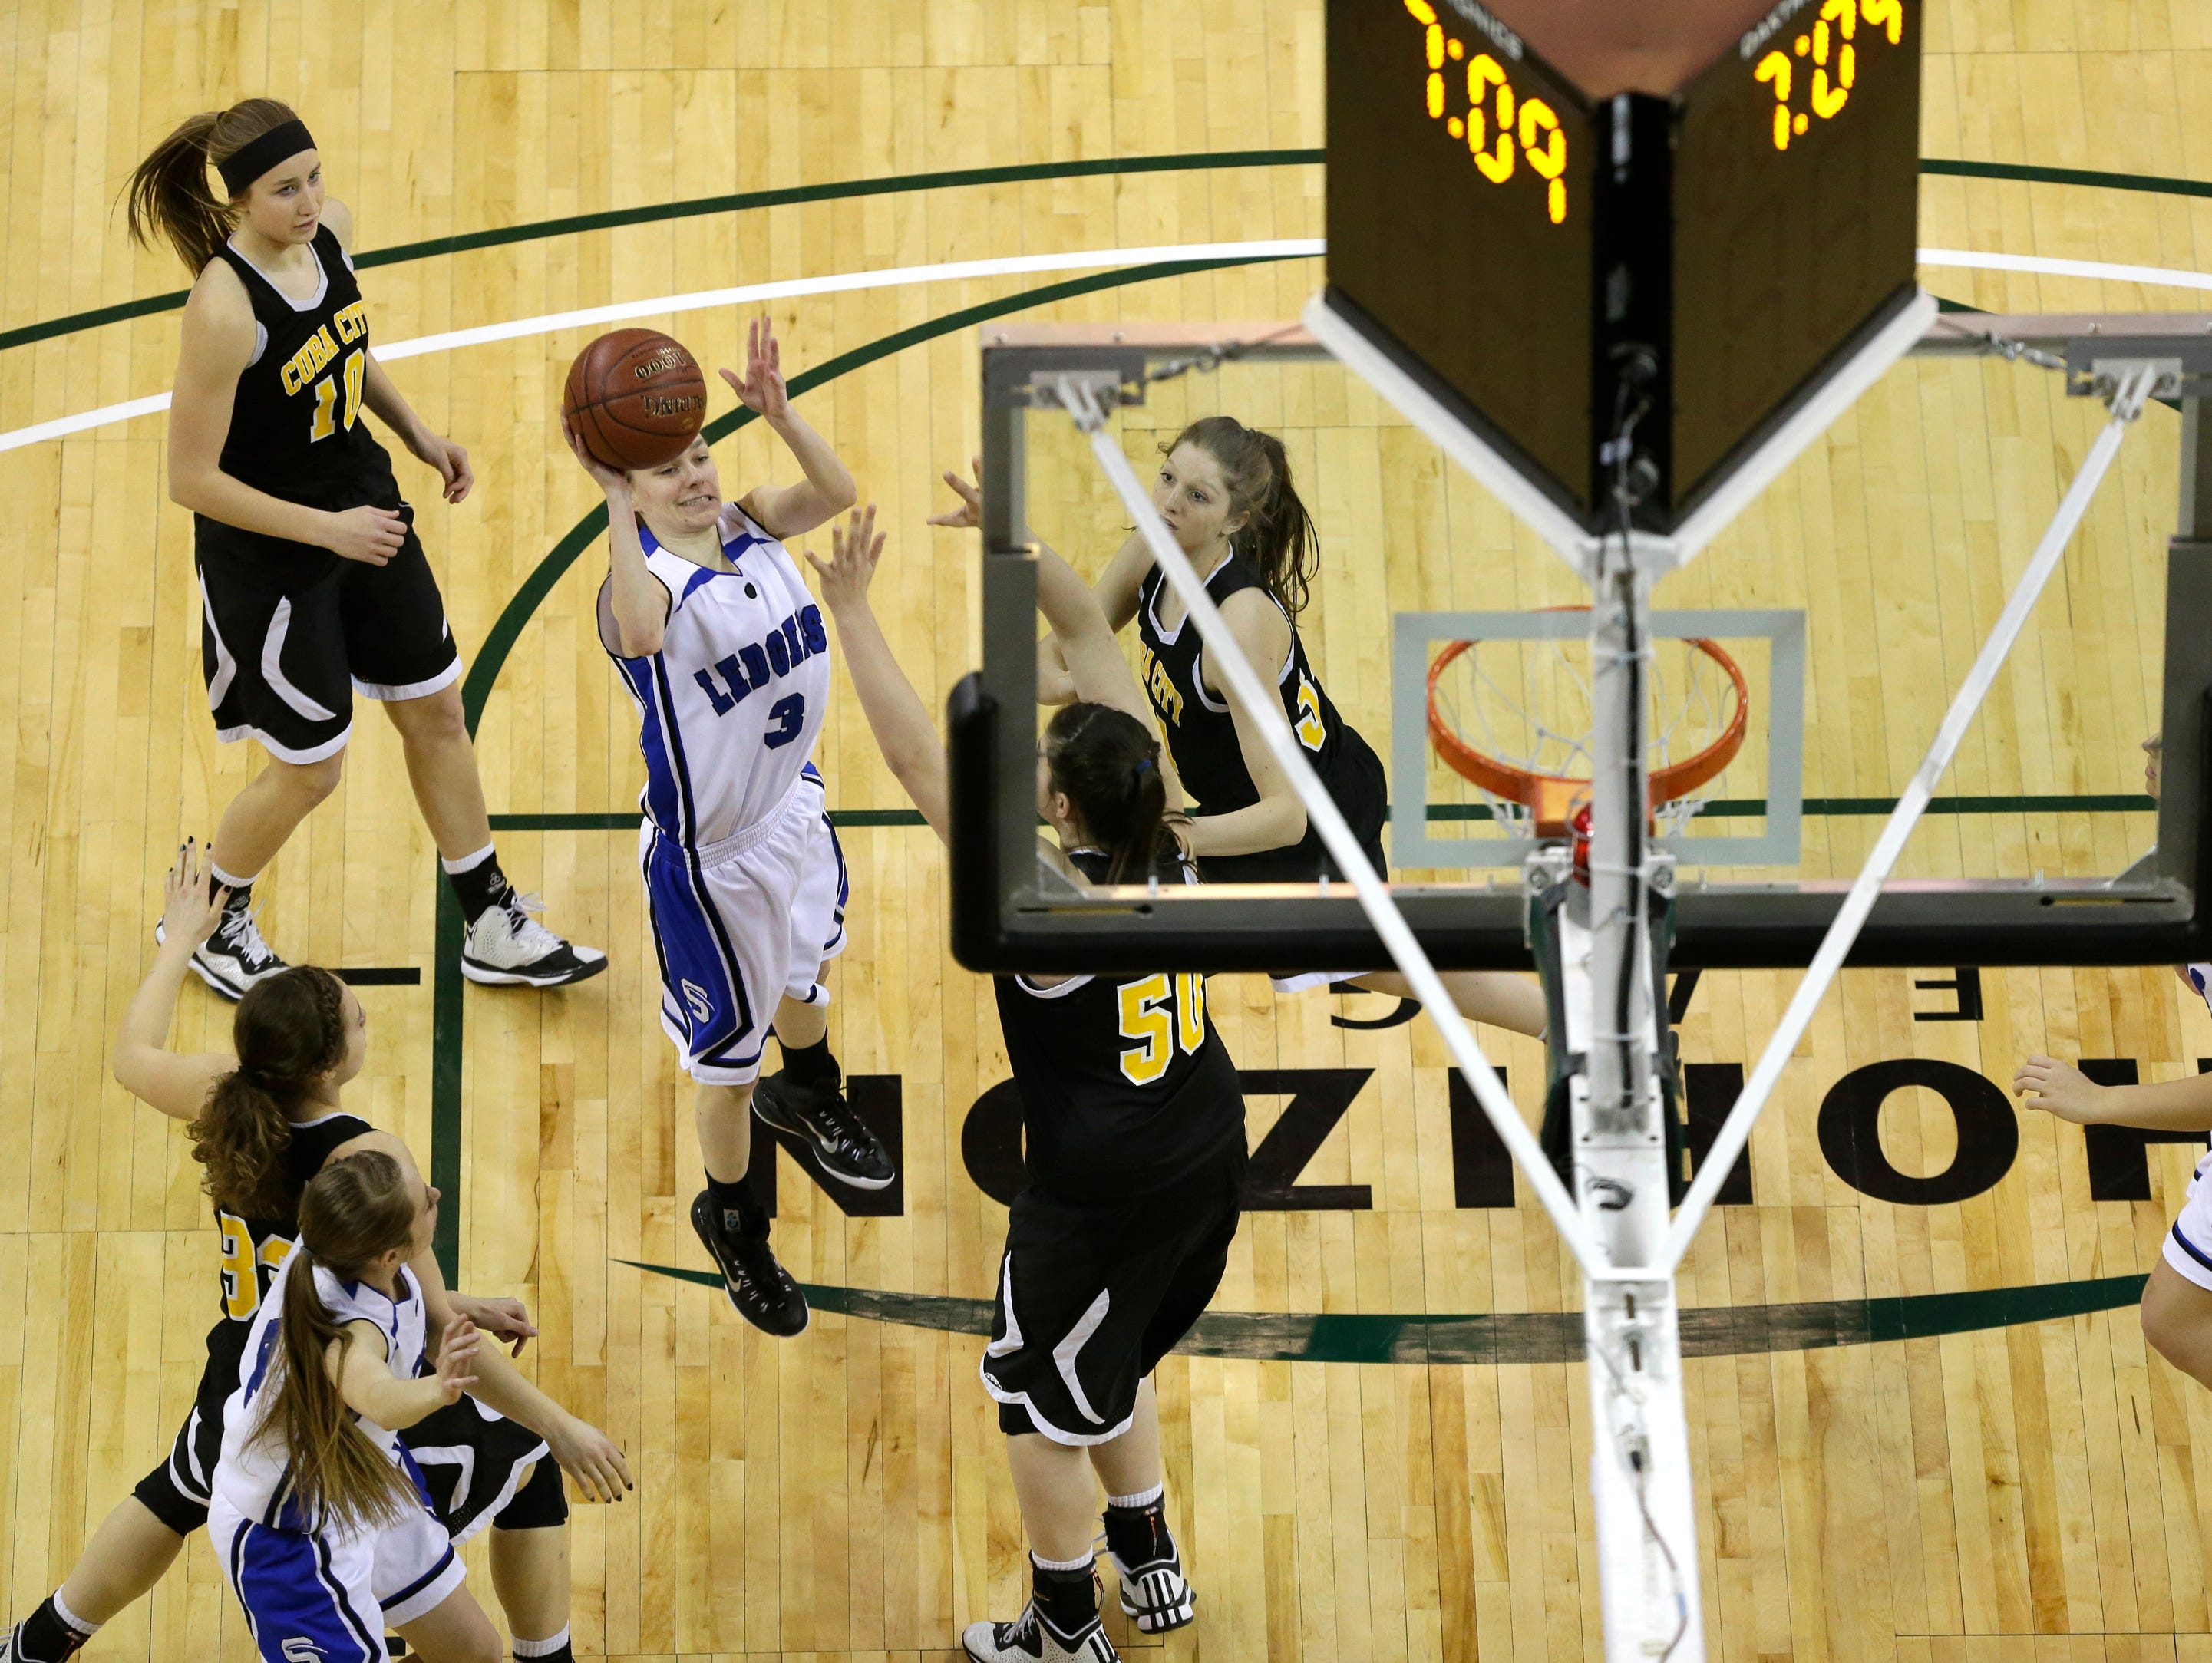 Saint Mary's Springs' Destiny Ottery puts up a shot against Cuba City during their WIAA Division 4 semifinal basketball game at the Resch Center in Ashwaubenon.